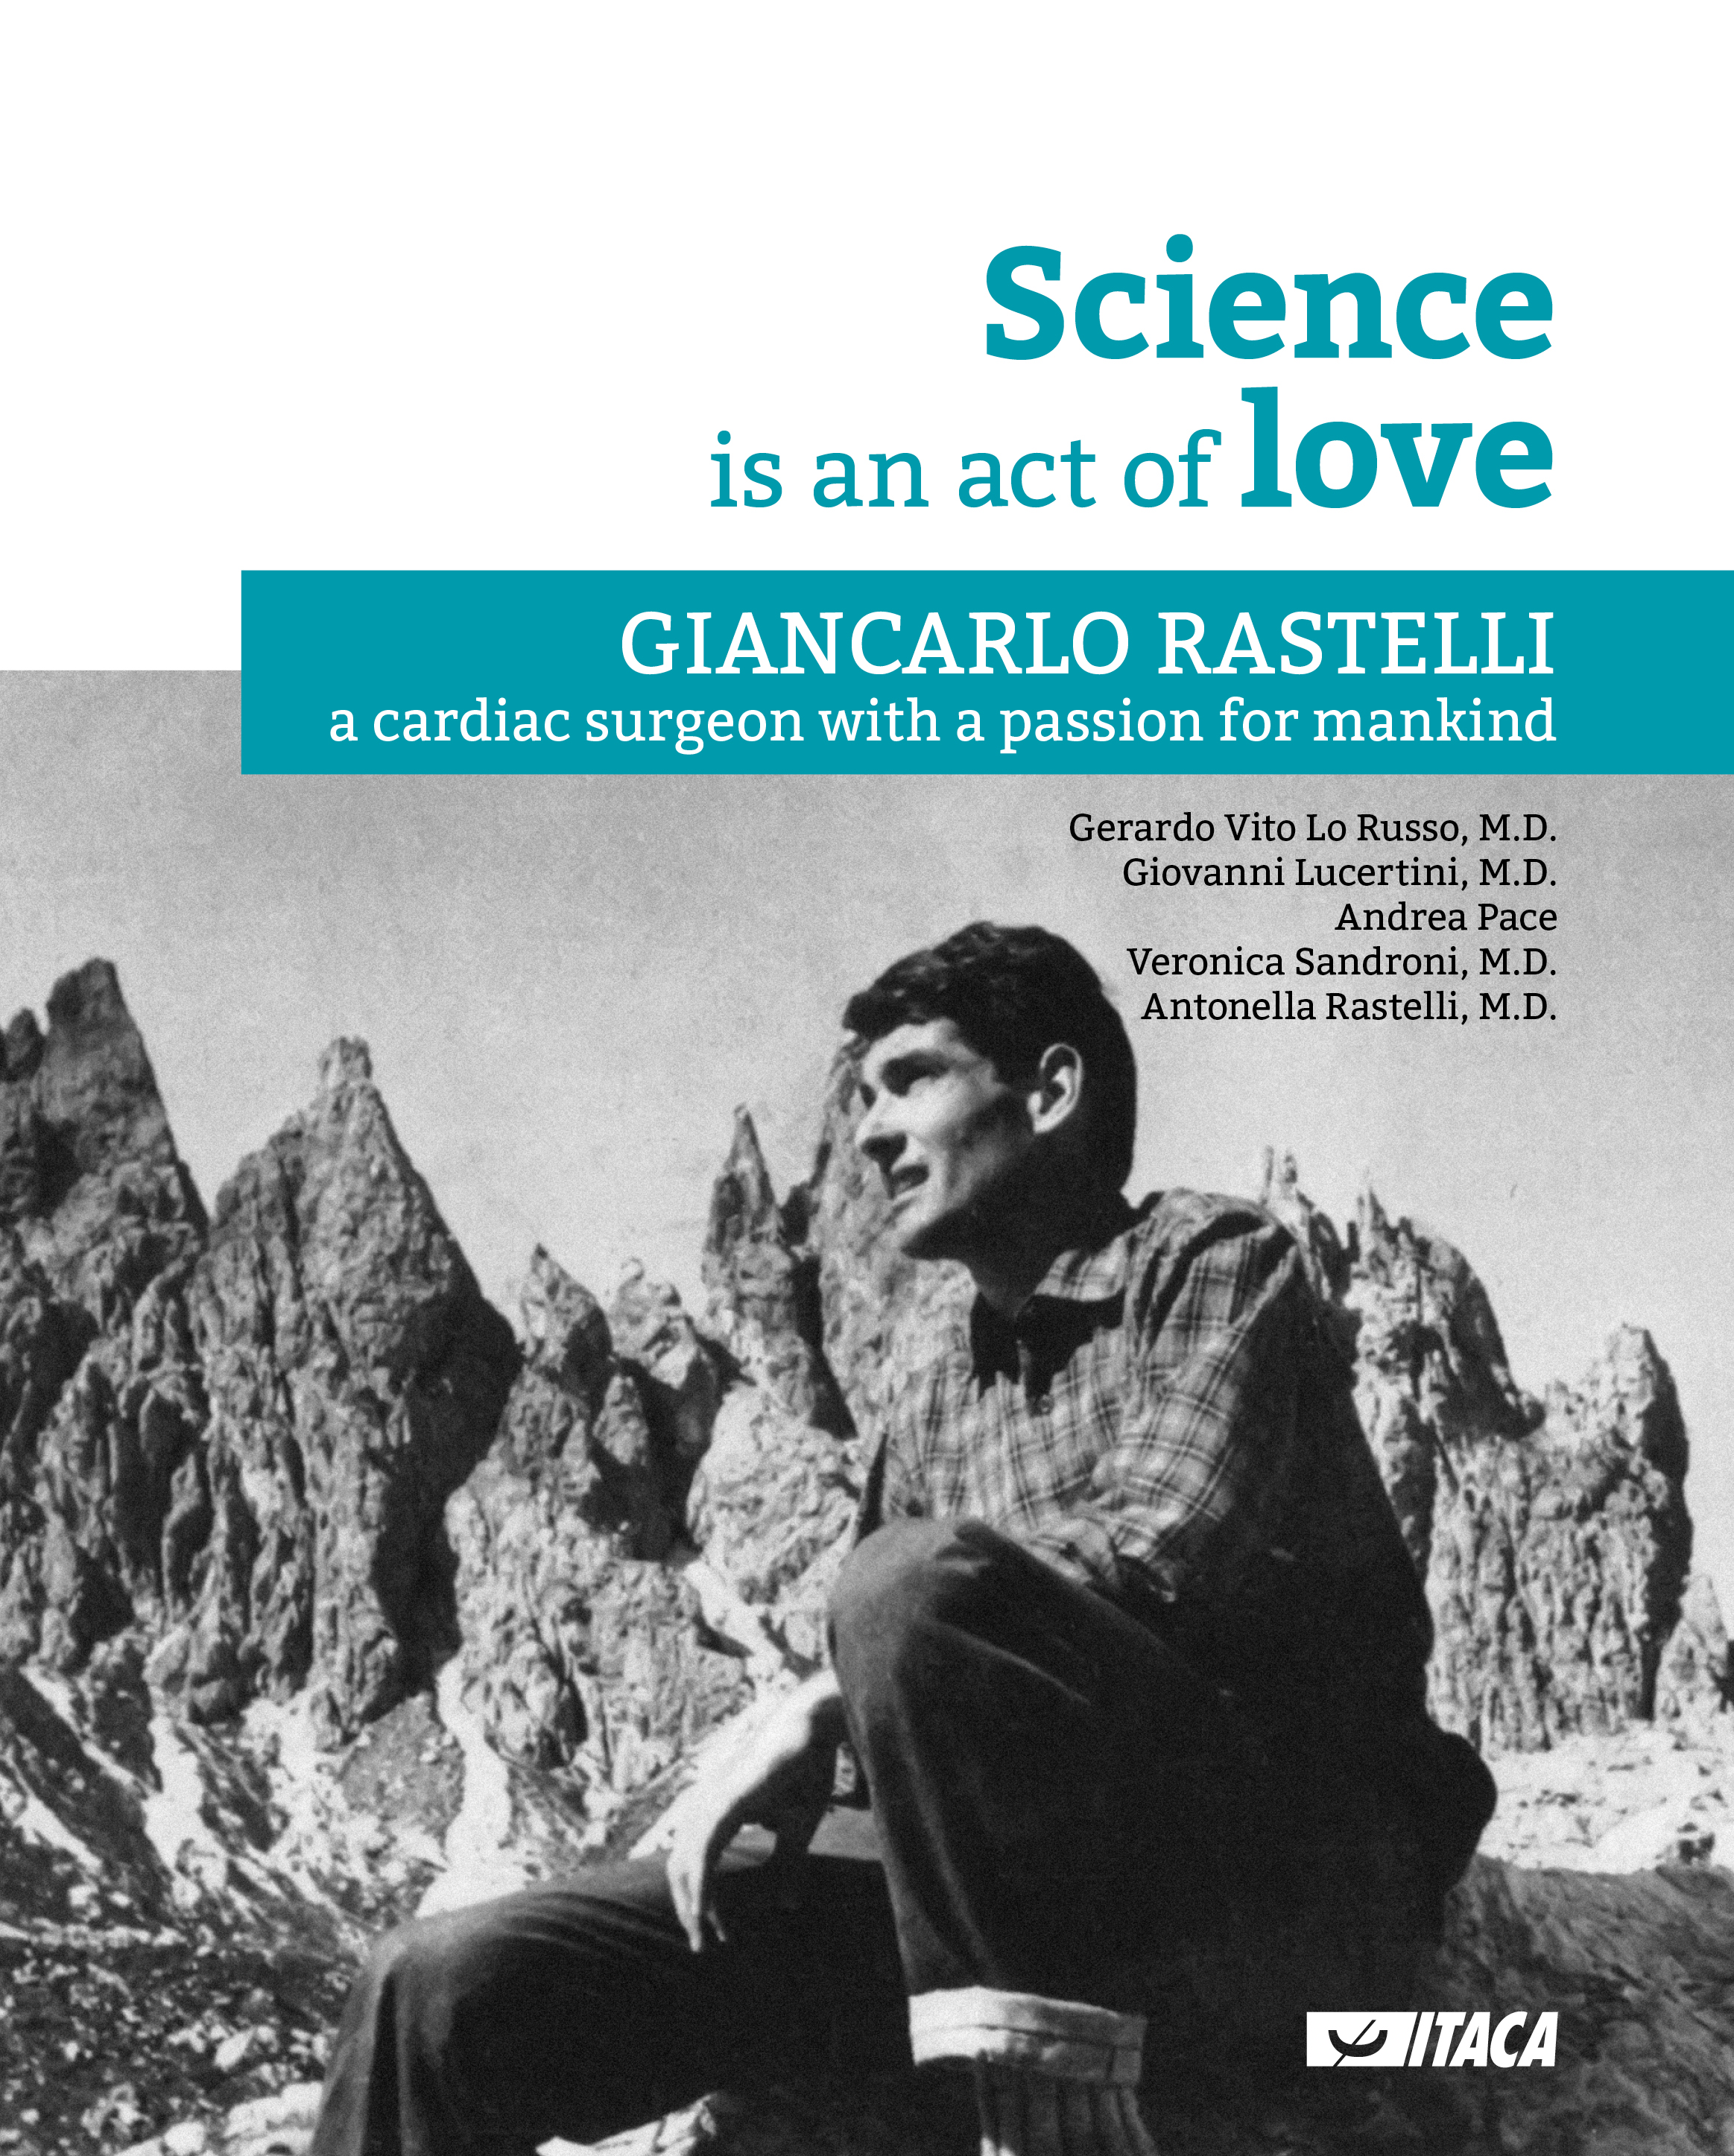 New book about the life of Dr. Giancarlo Rastelli